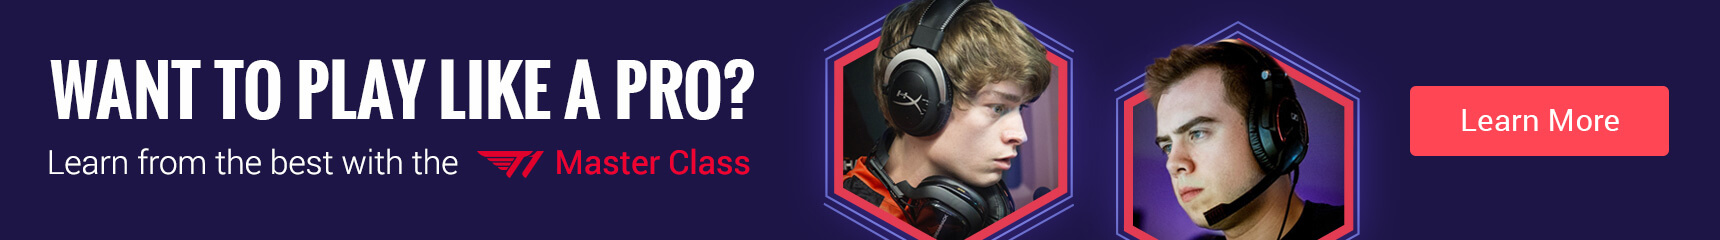 Want to play like a pro? Get your 30% discount for the T1 Master Class